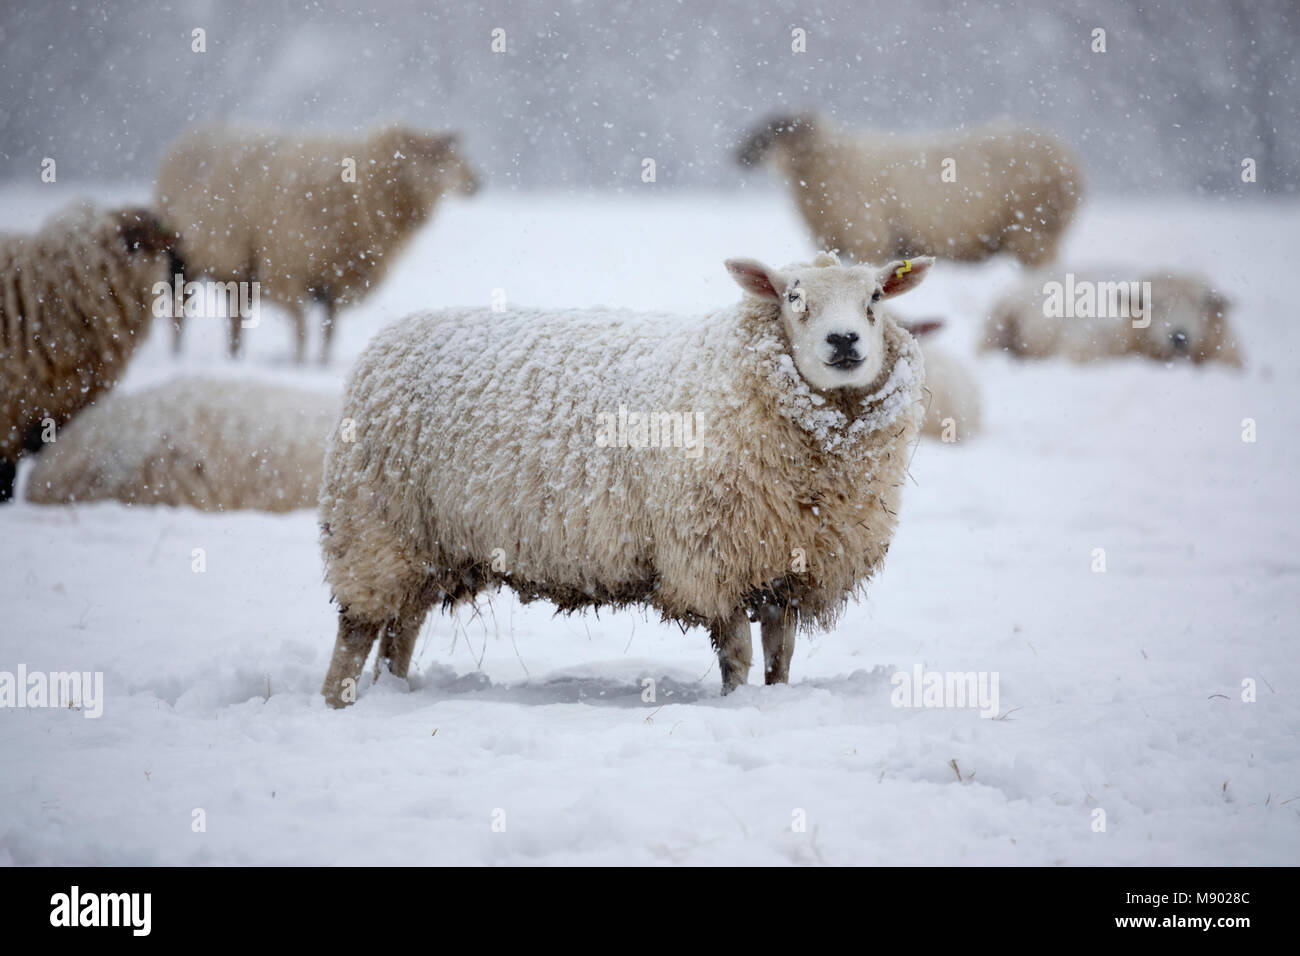 White texel sheep covered in snow and standing in field of snow, Burwash, East Sussex, England, United Kingdom, - Stock Image